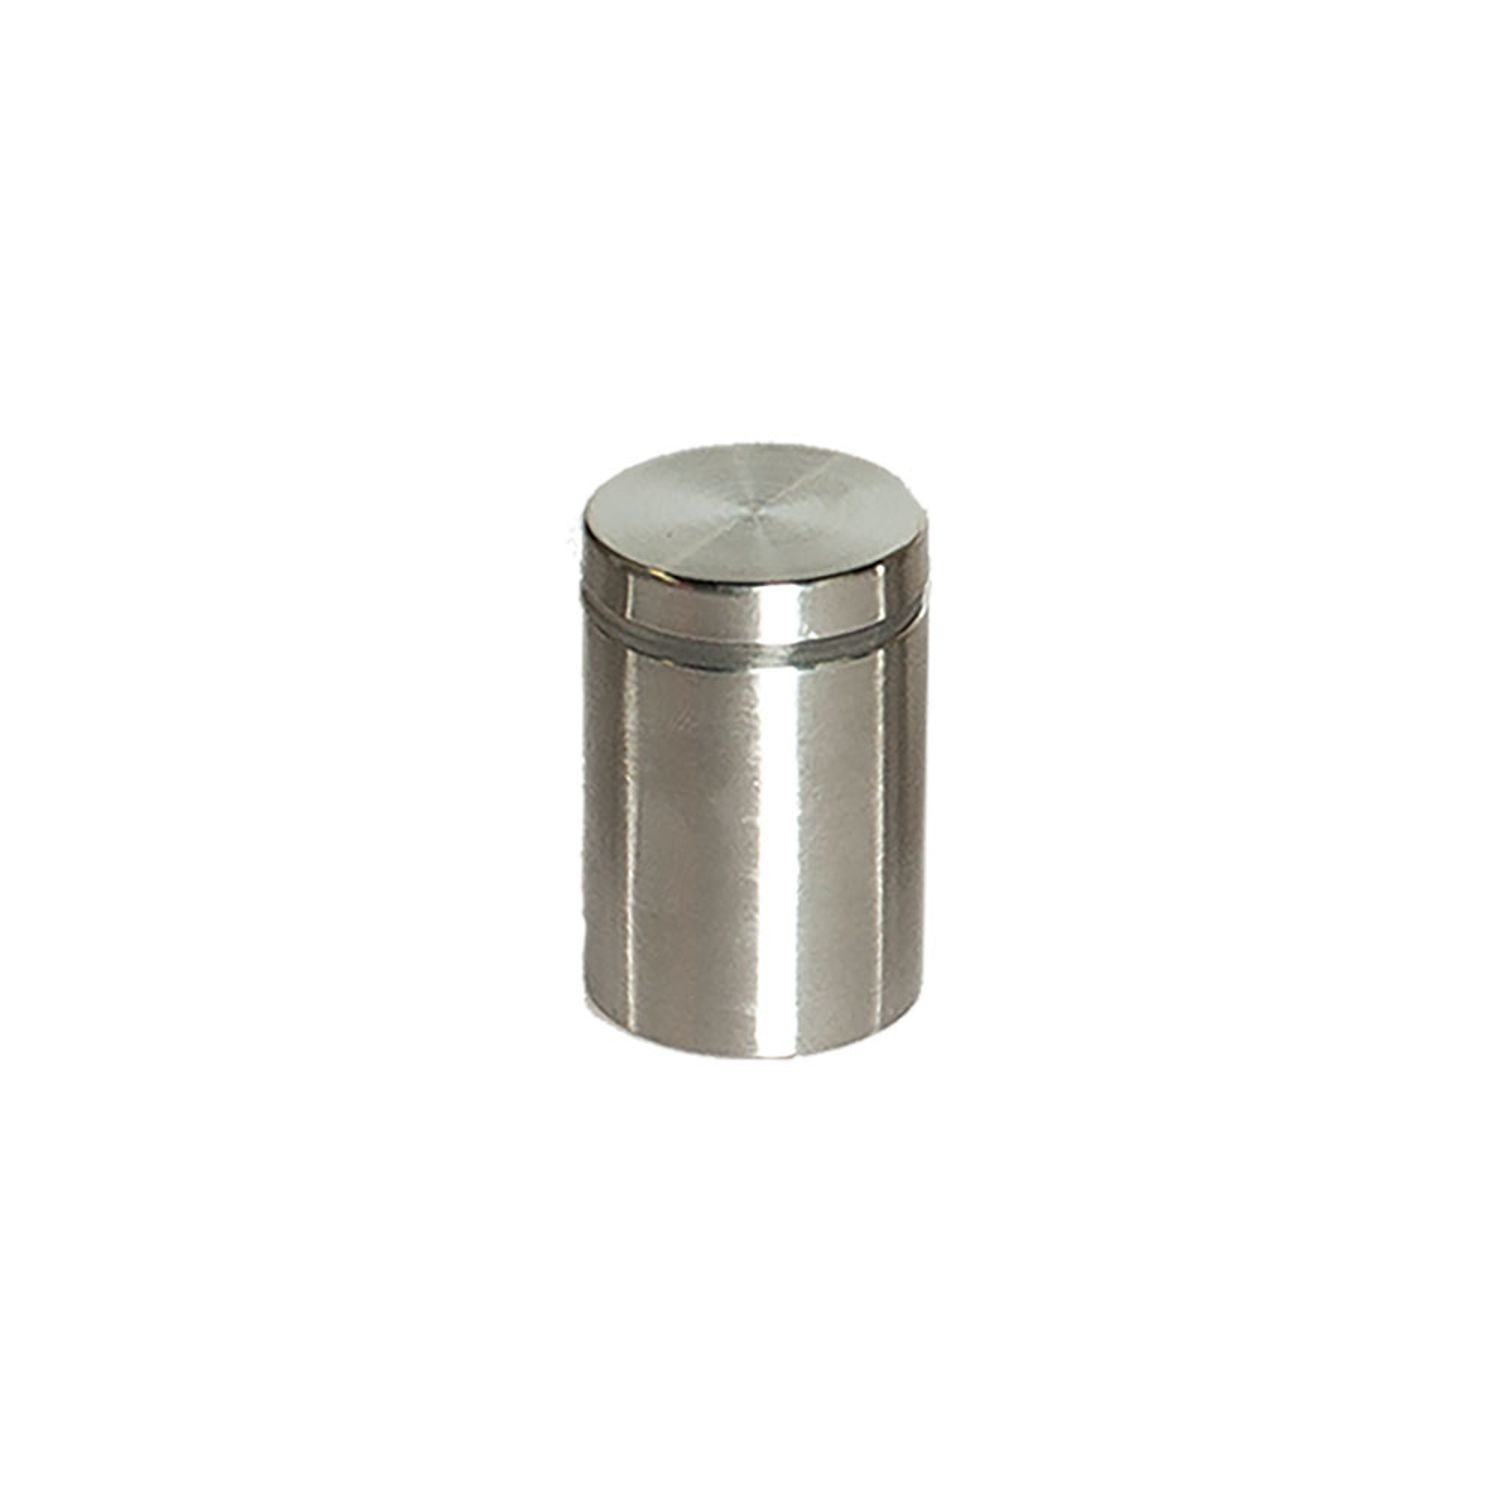 "1"" Diameter x 1-1/2"" Barrel Length Brushed Stainless Finish Eco Lock Series Tamper Proof Standoff"